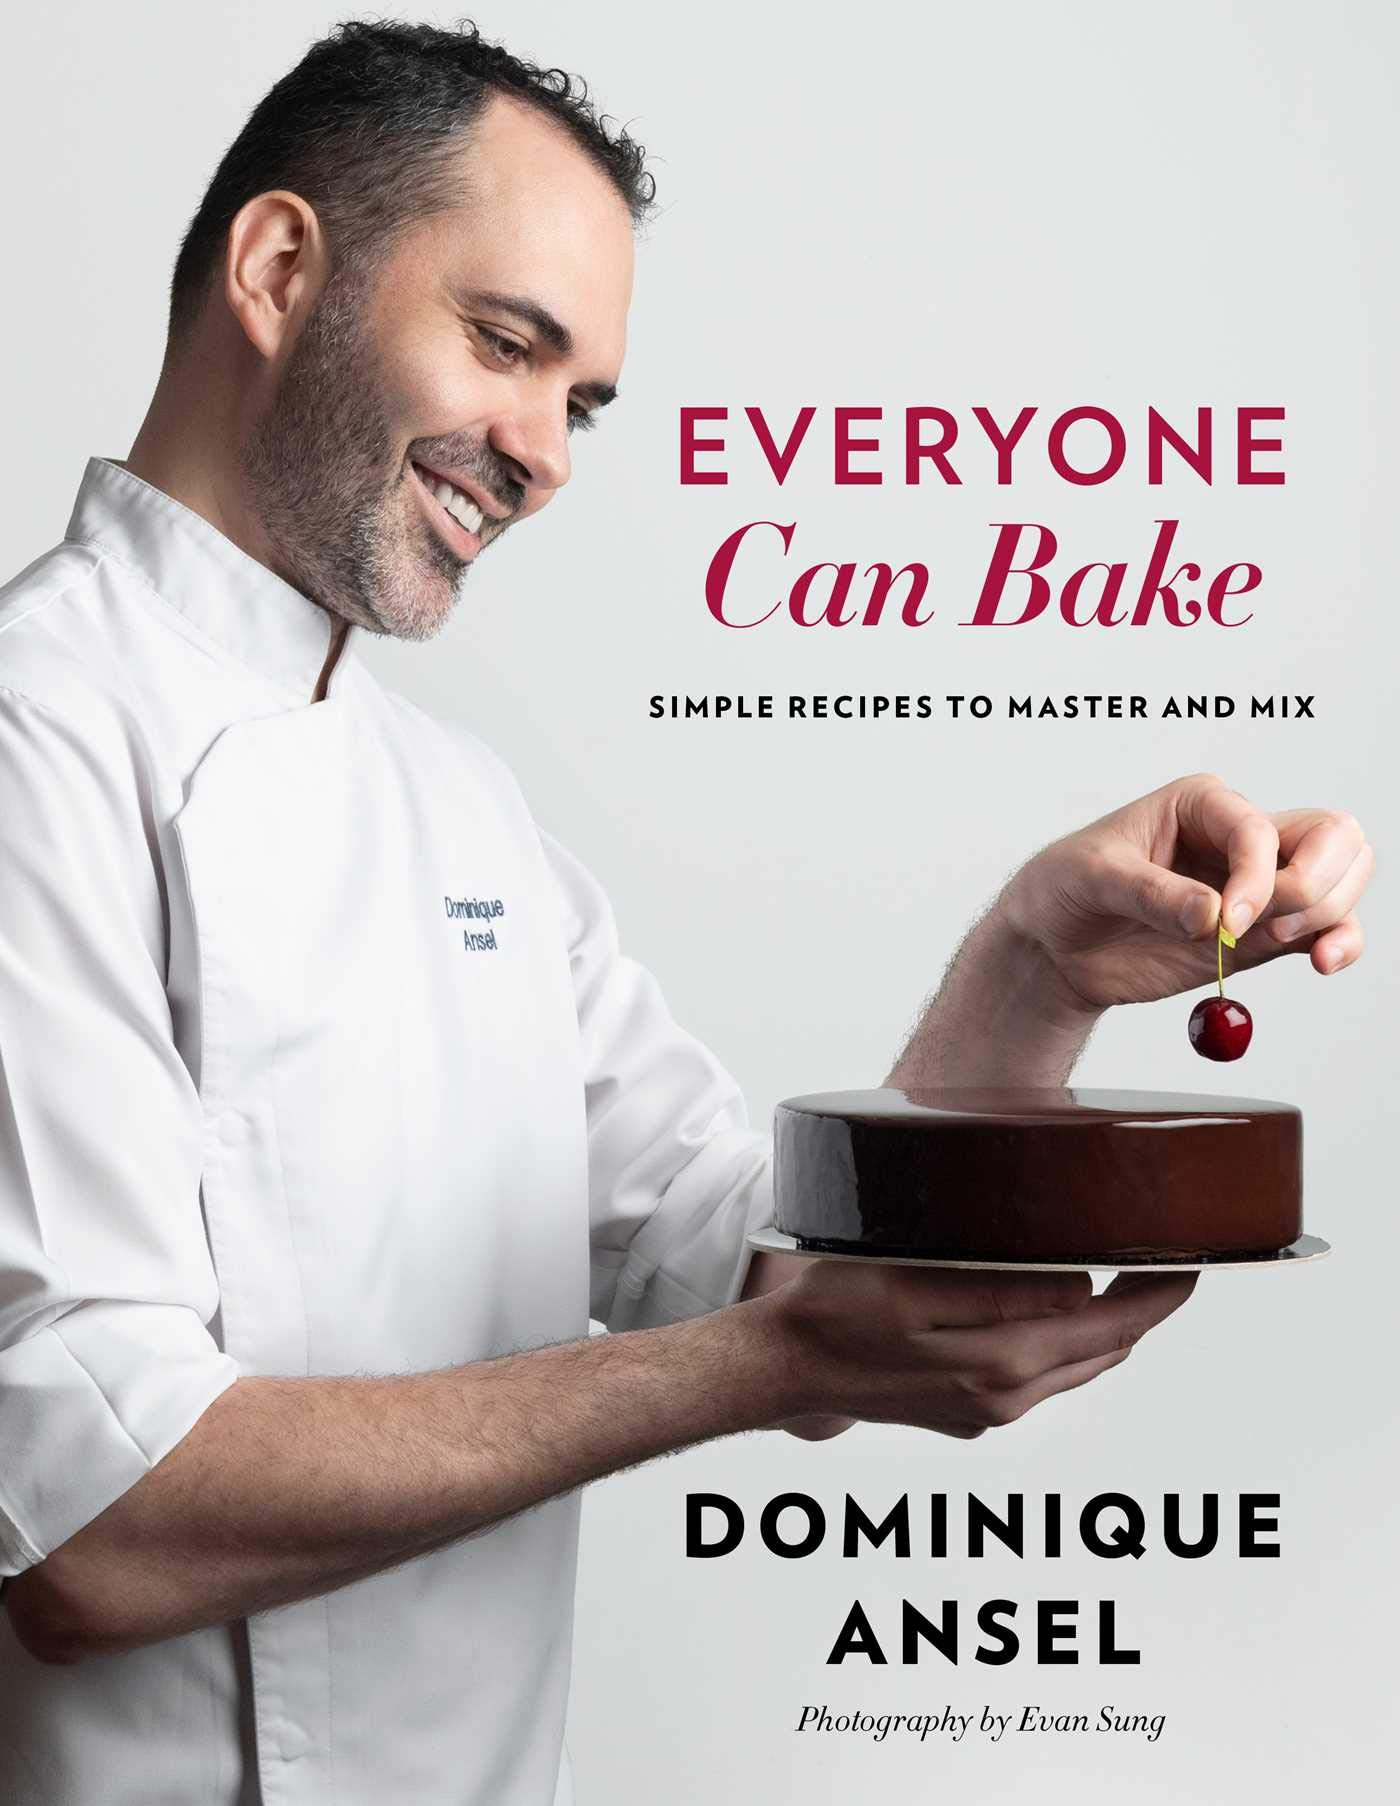 Image OfEveryone Can Bake: Simple Recipes To Master And Mix